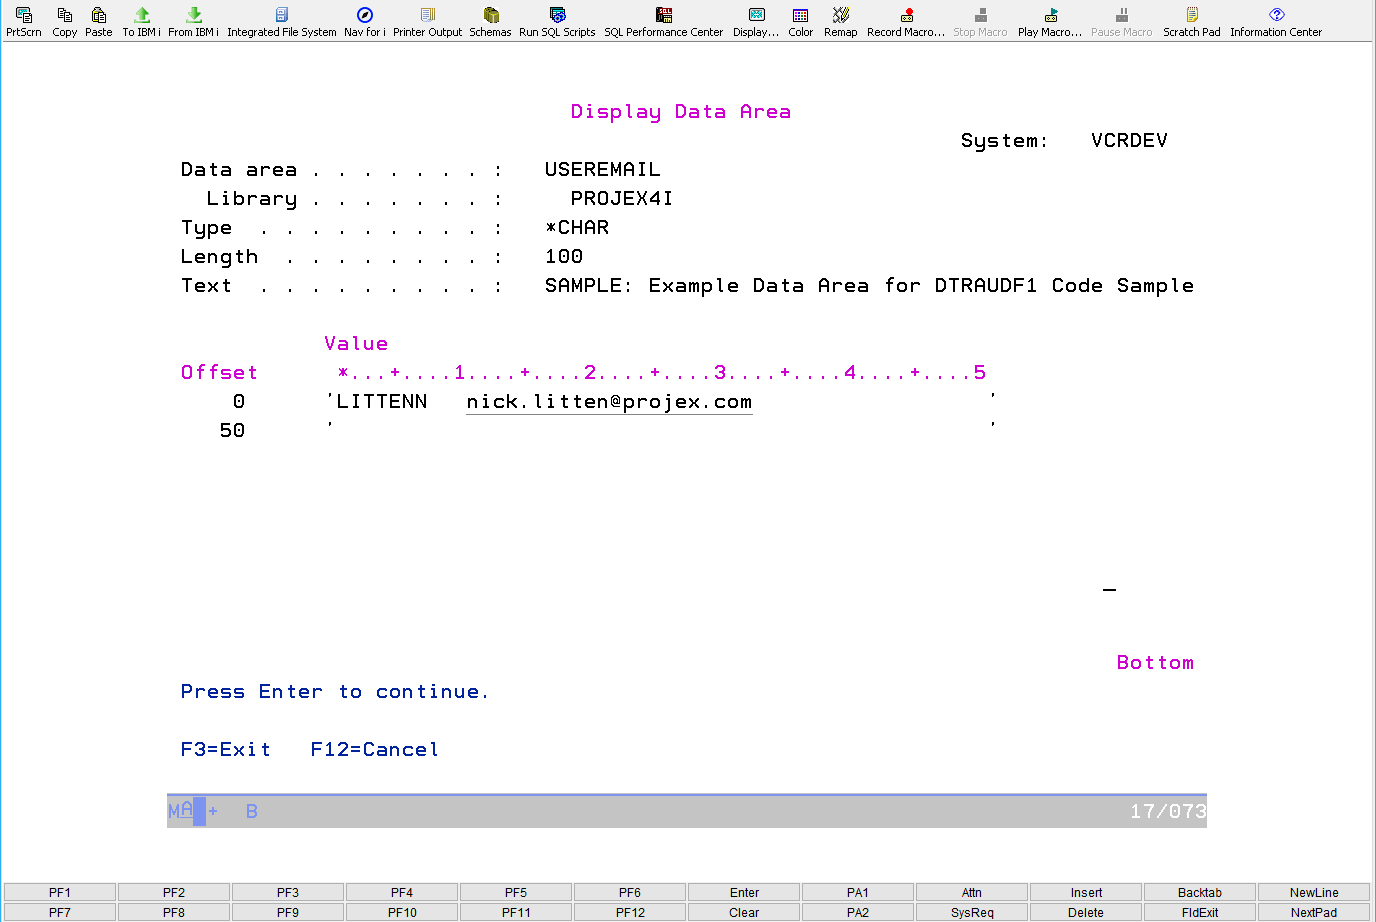 How to read a Data Area (*DTAARA) using IBM i SQL 1